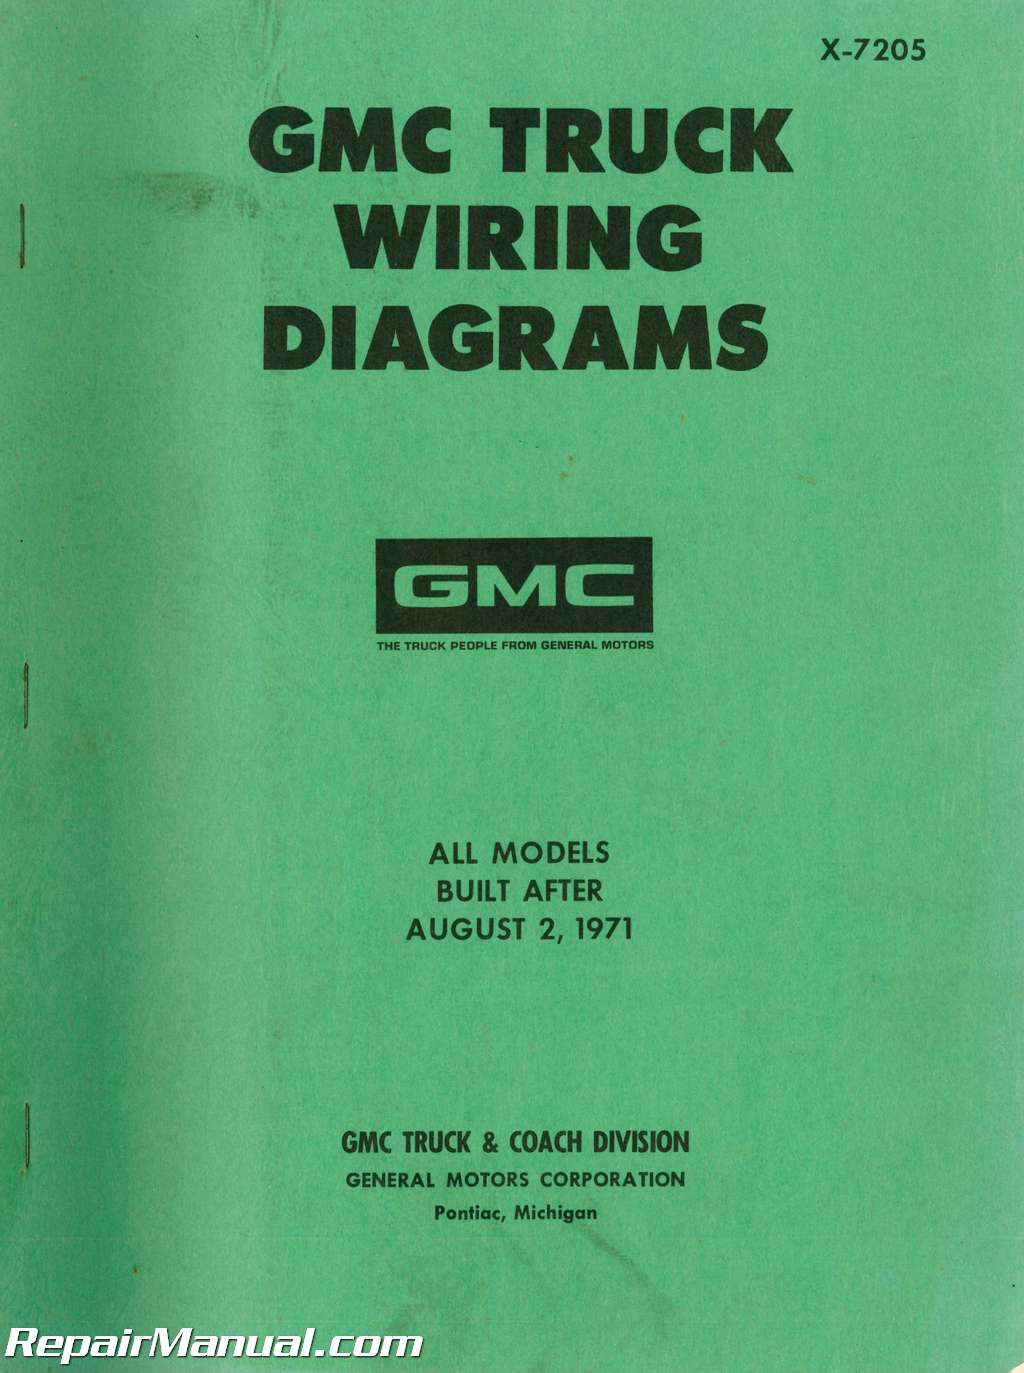 1972 Gmc Truck Wiring Diagram Detailed Schematics 1970 Chevy Starter Used Diagrams Wd 001